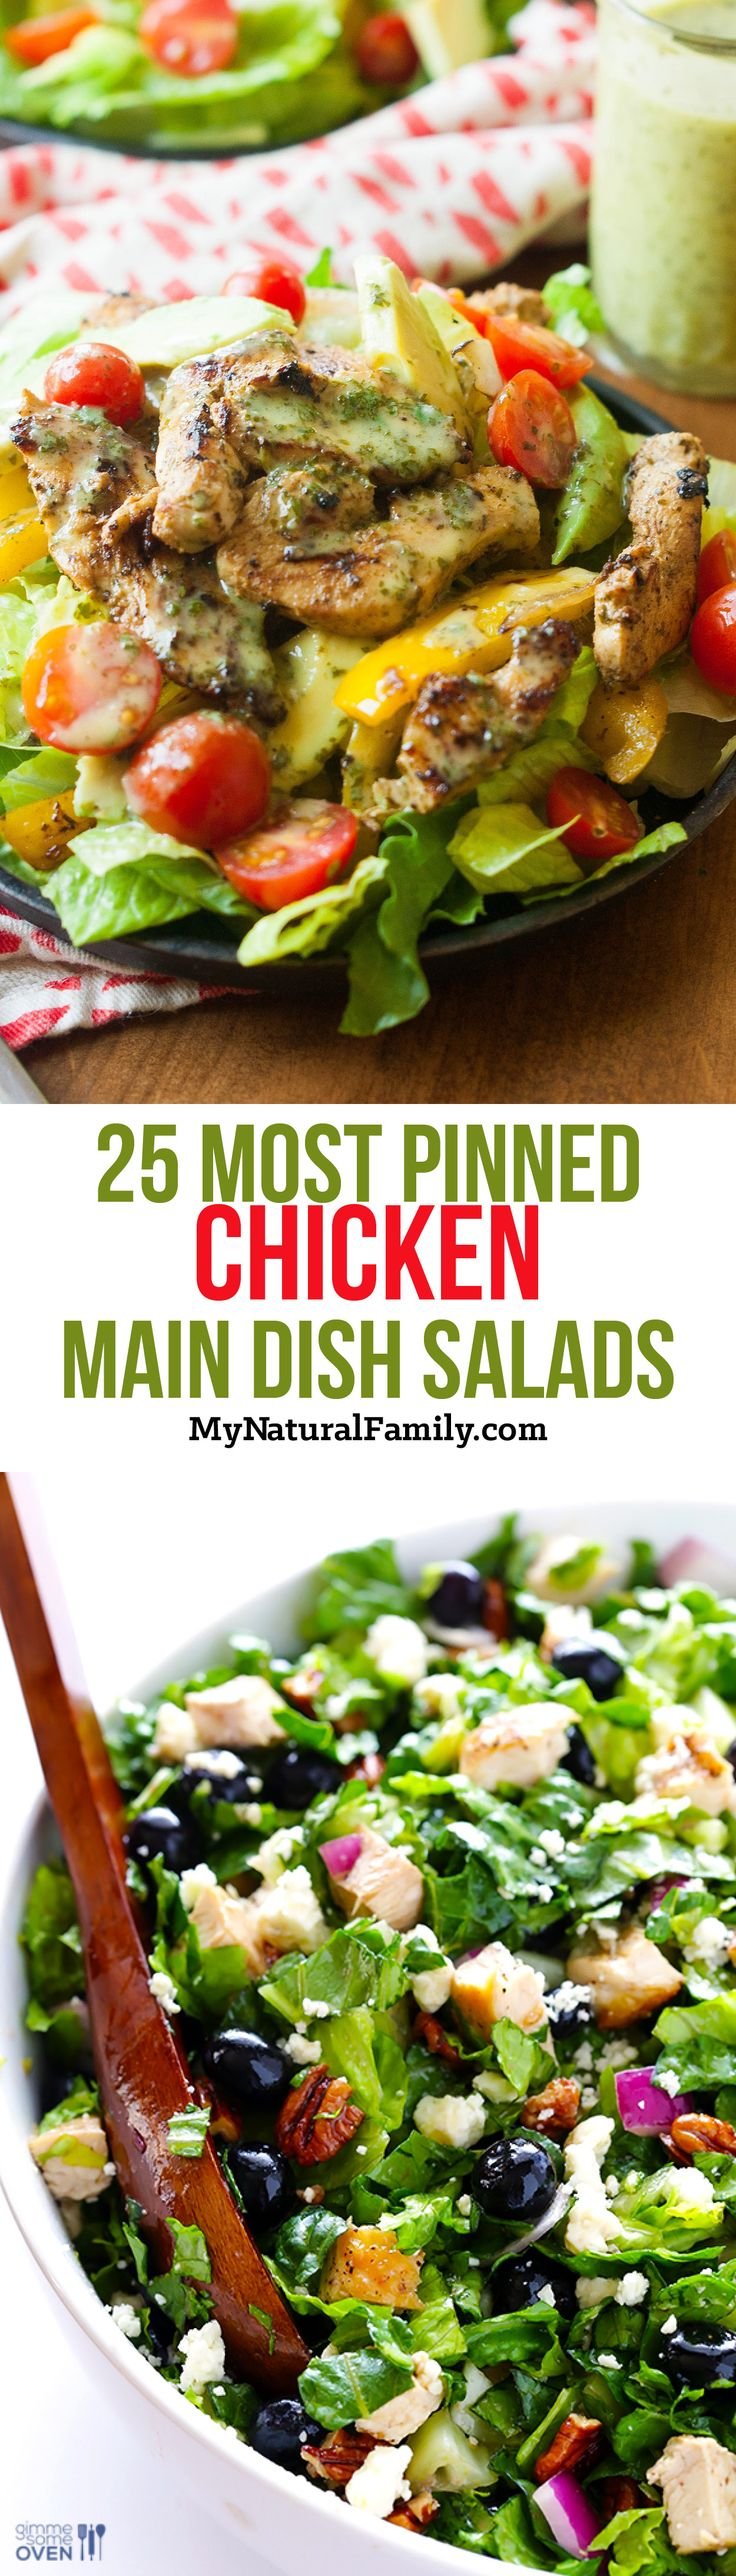 25 Most Pinned Main Dish Salads with Chicken - My Natural Family